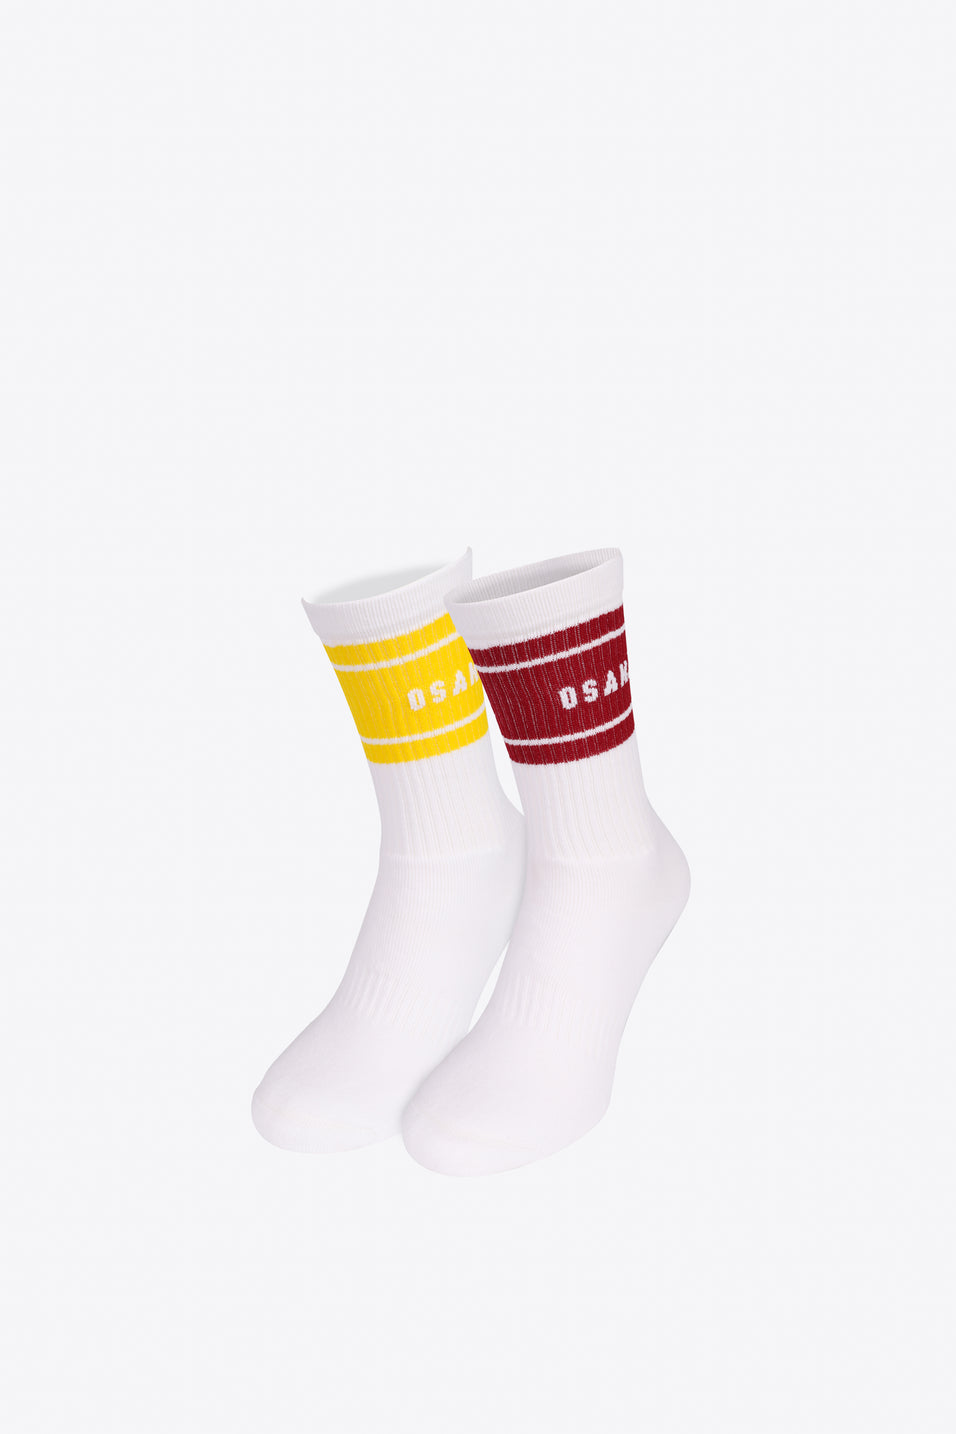 Colourway Socks Duo Pack - Maroon / Yellow